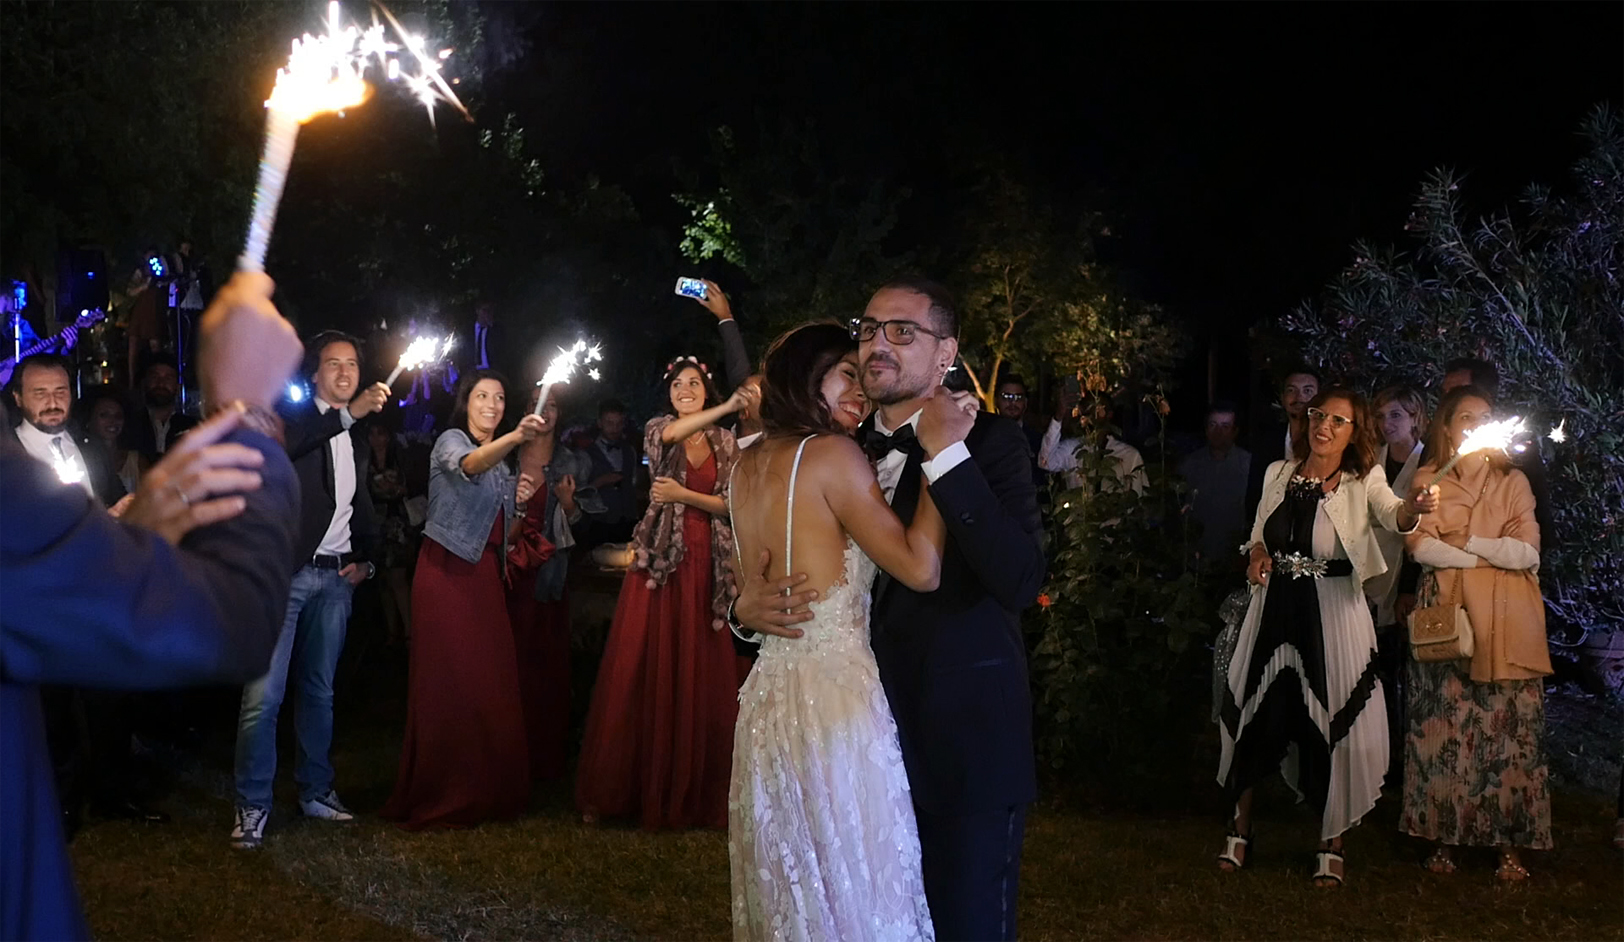 wedding-in-tuscany-first-dance-brides.jpg